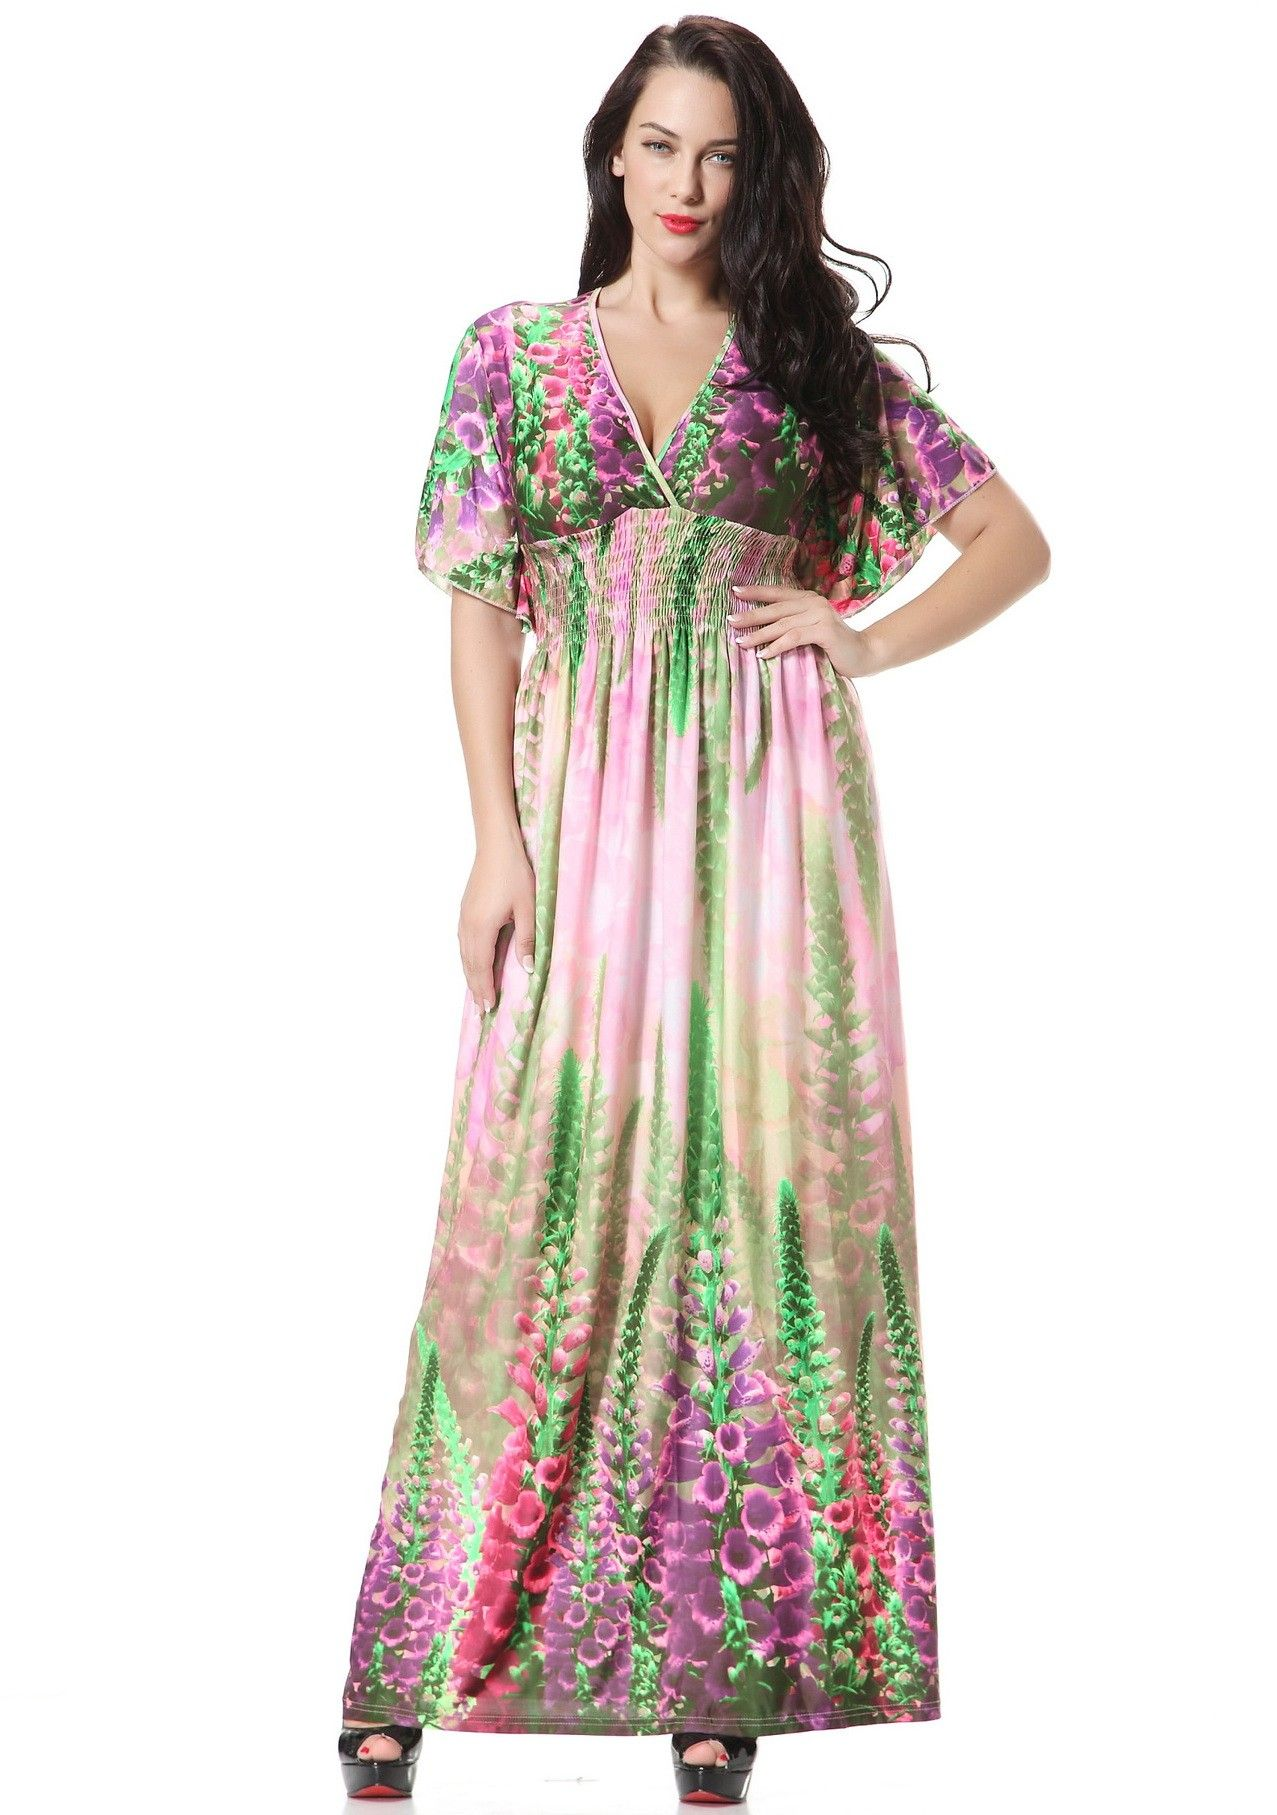 Plus size green floral print ice silk boho beach summer dress